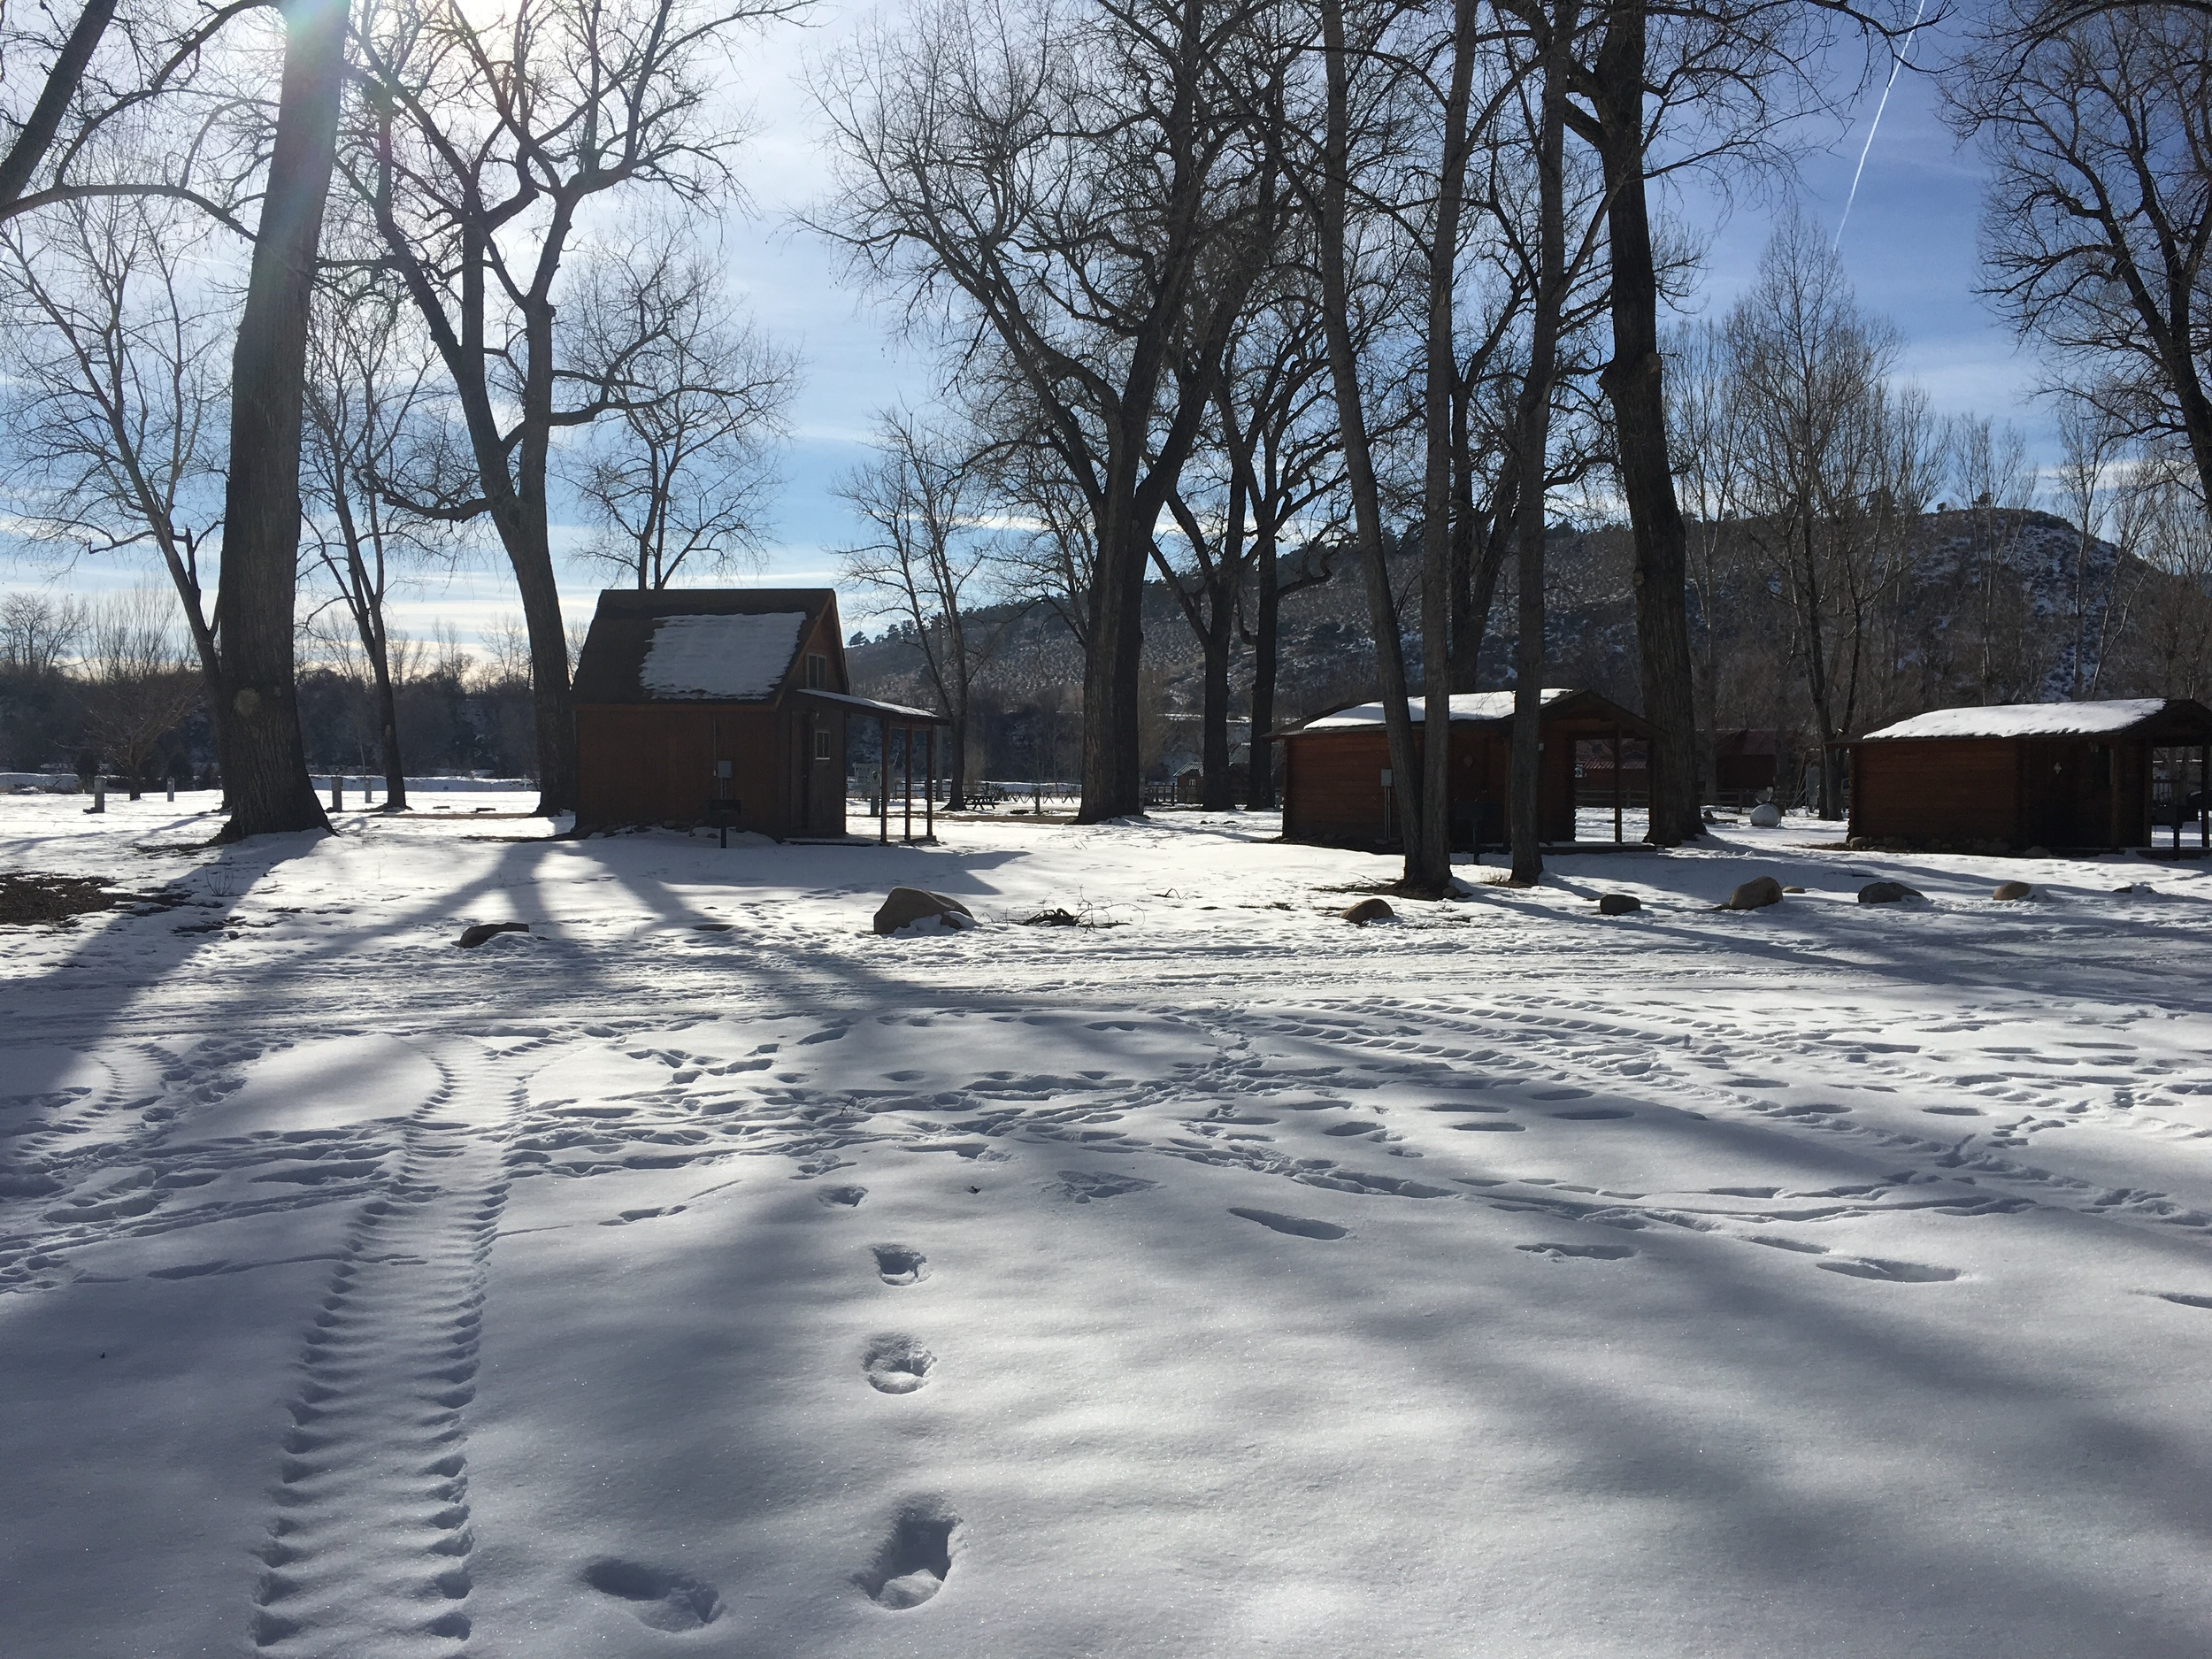 Here's another view of the neighboring cabins from the back of space #157. To the left and behind of the cabins are additional partial hookup spaces and tent camping sites.